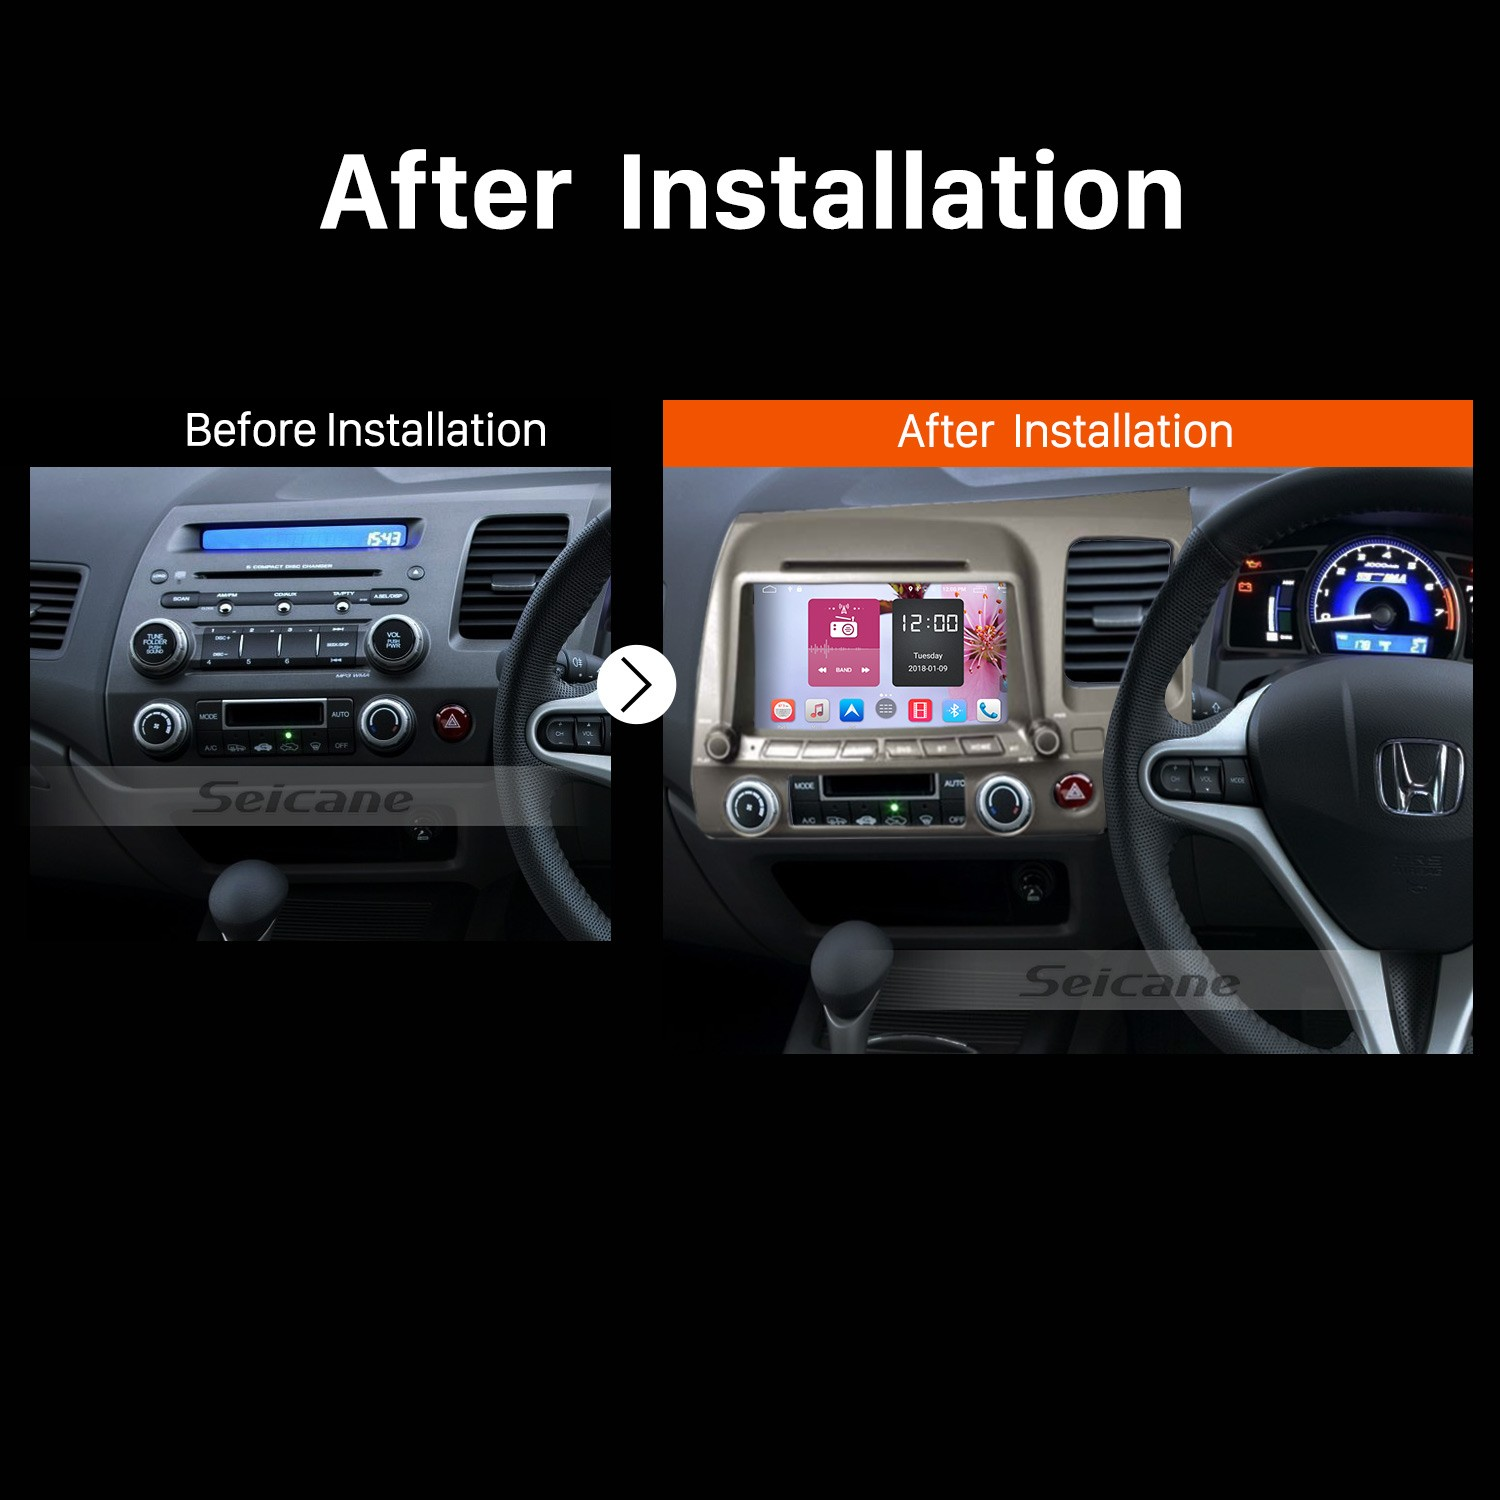 2008 2009 2010 2017 Honda Civic Rhd Gps Bluetooth Dvd Car Radio After Installation